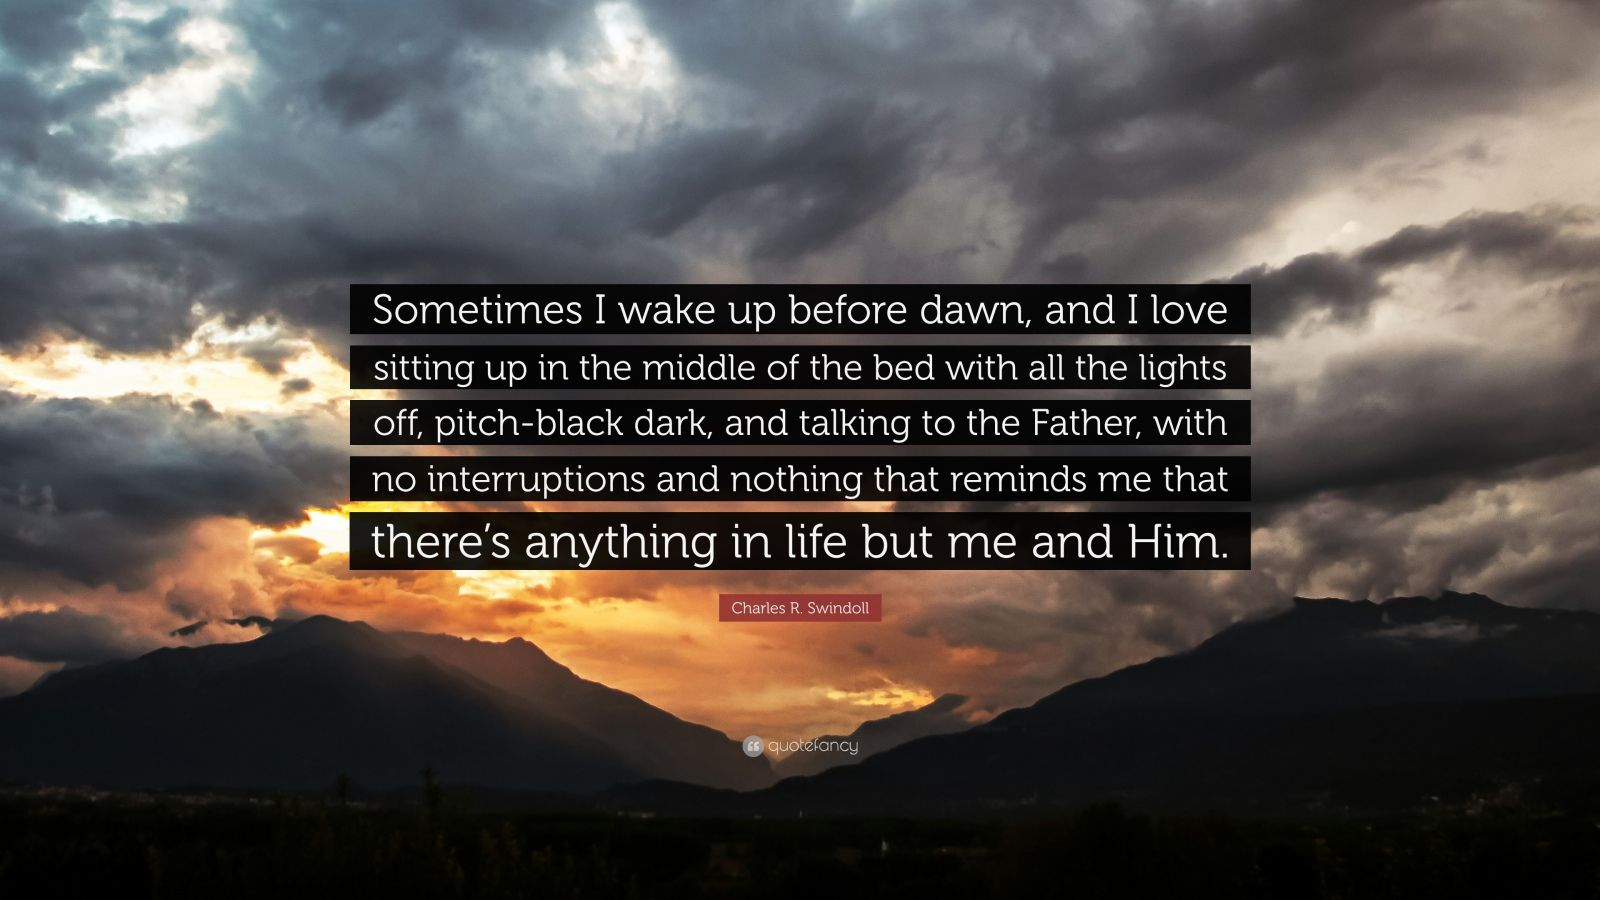 """Charles R. Swindoll Quote: """"Sometimes I wake up before dawn, and I love sitting up in the middle of the bed with all the lights off, pitch-black dark, and talking to the Father, with no interruptions and nothing that reminds me that there's anything in life but me and Him."""""""